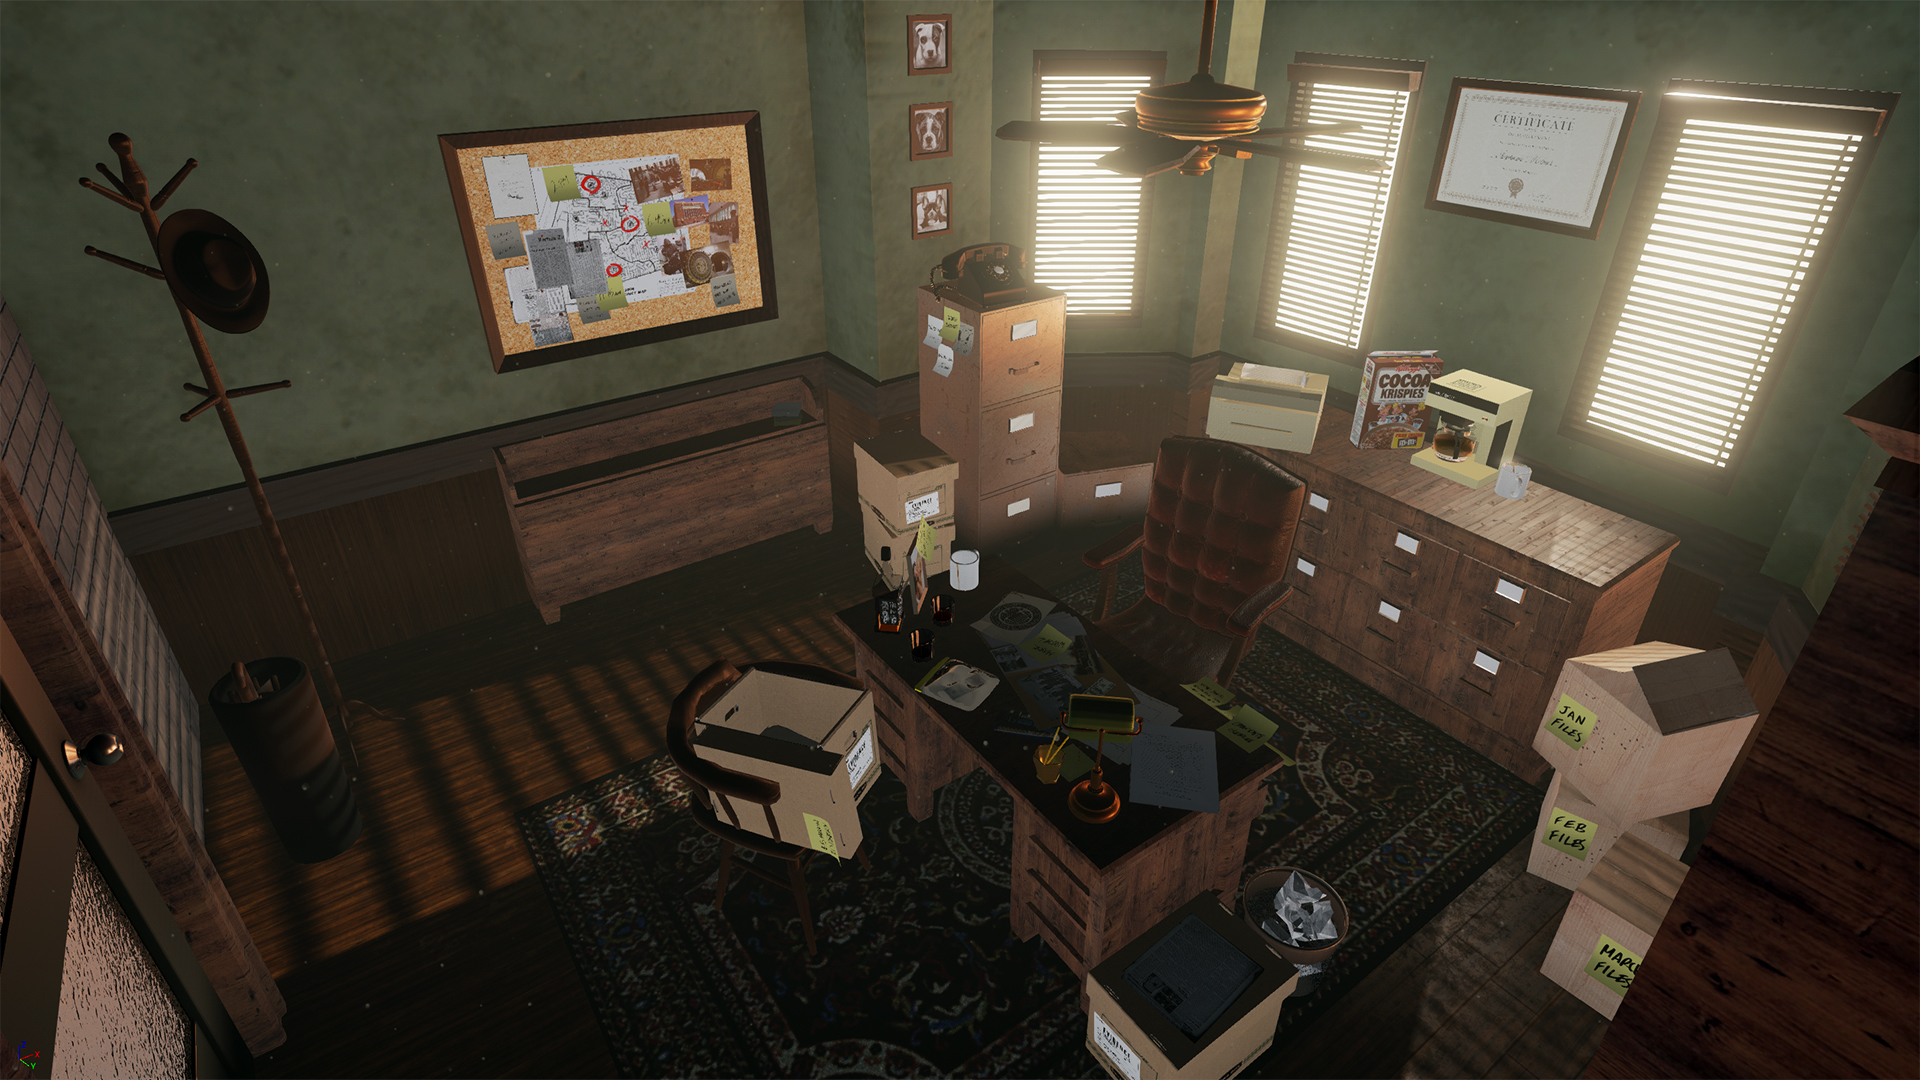 Detectives Office